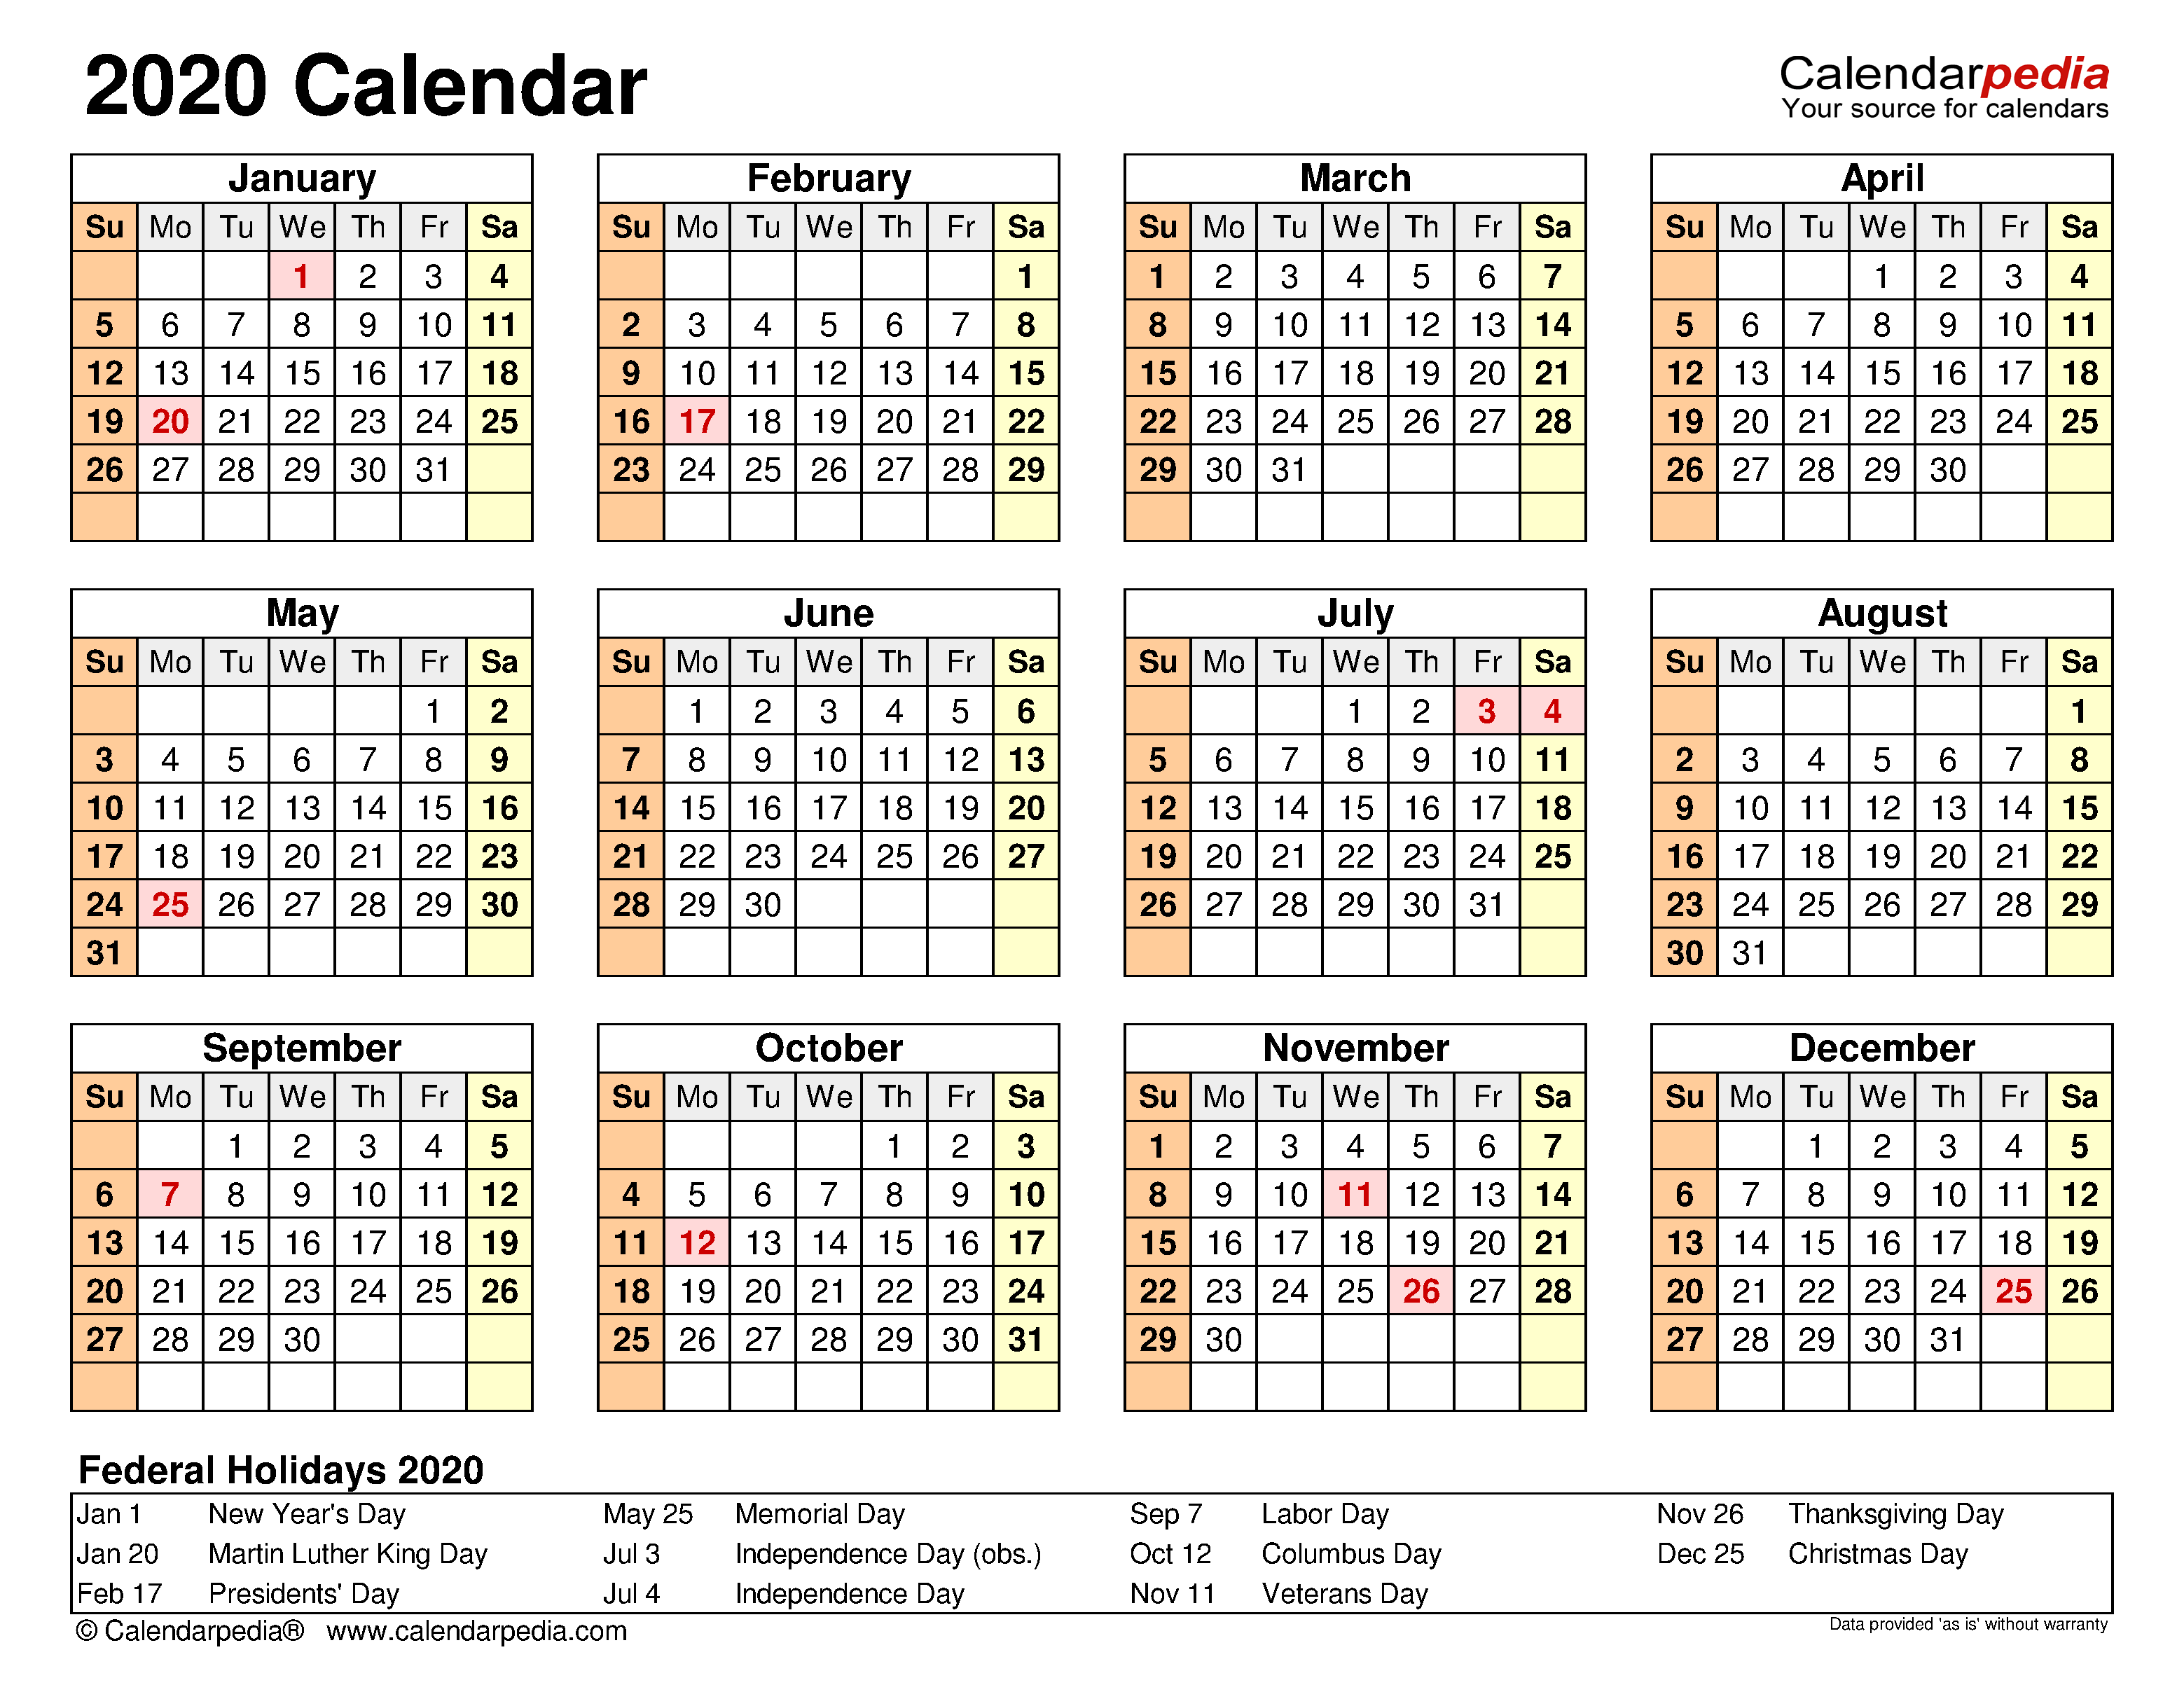 2020 Calendar Free Printable Word Templates Calendarpedia